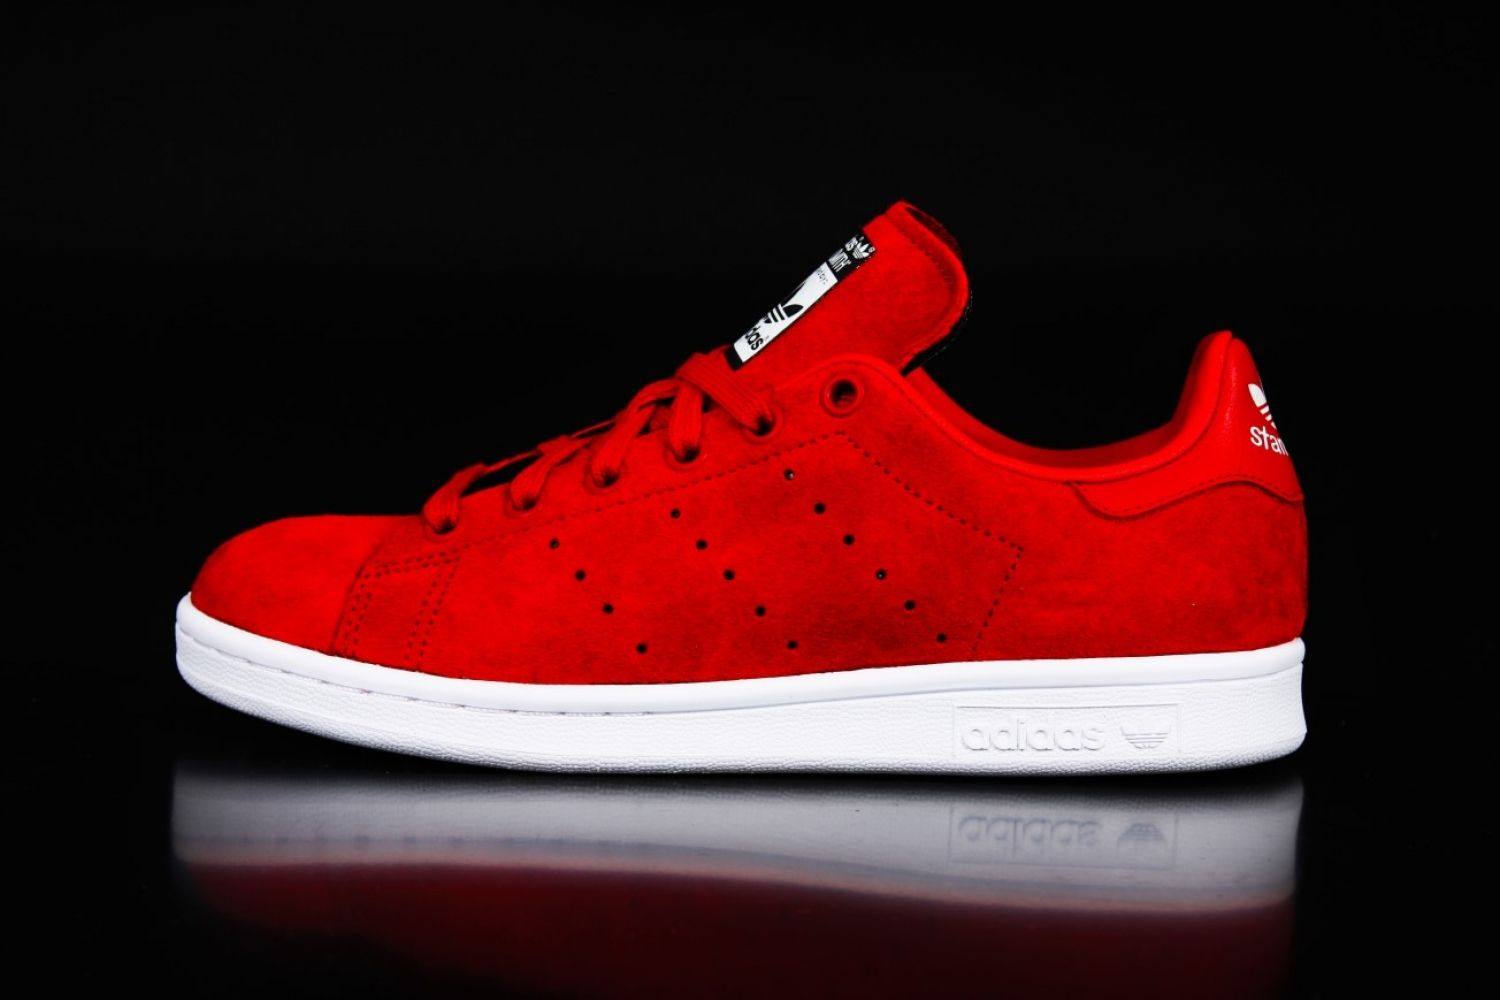 Red White Low Disbursement Adidas Superstar Unisex Sneakers Stripes Shoes